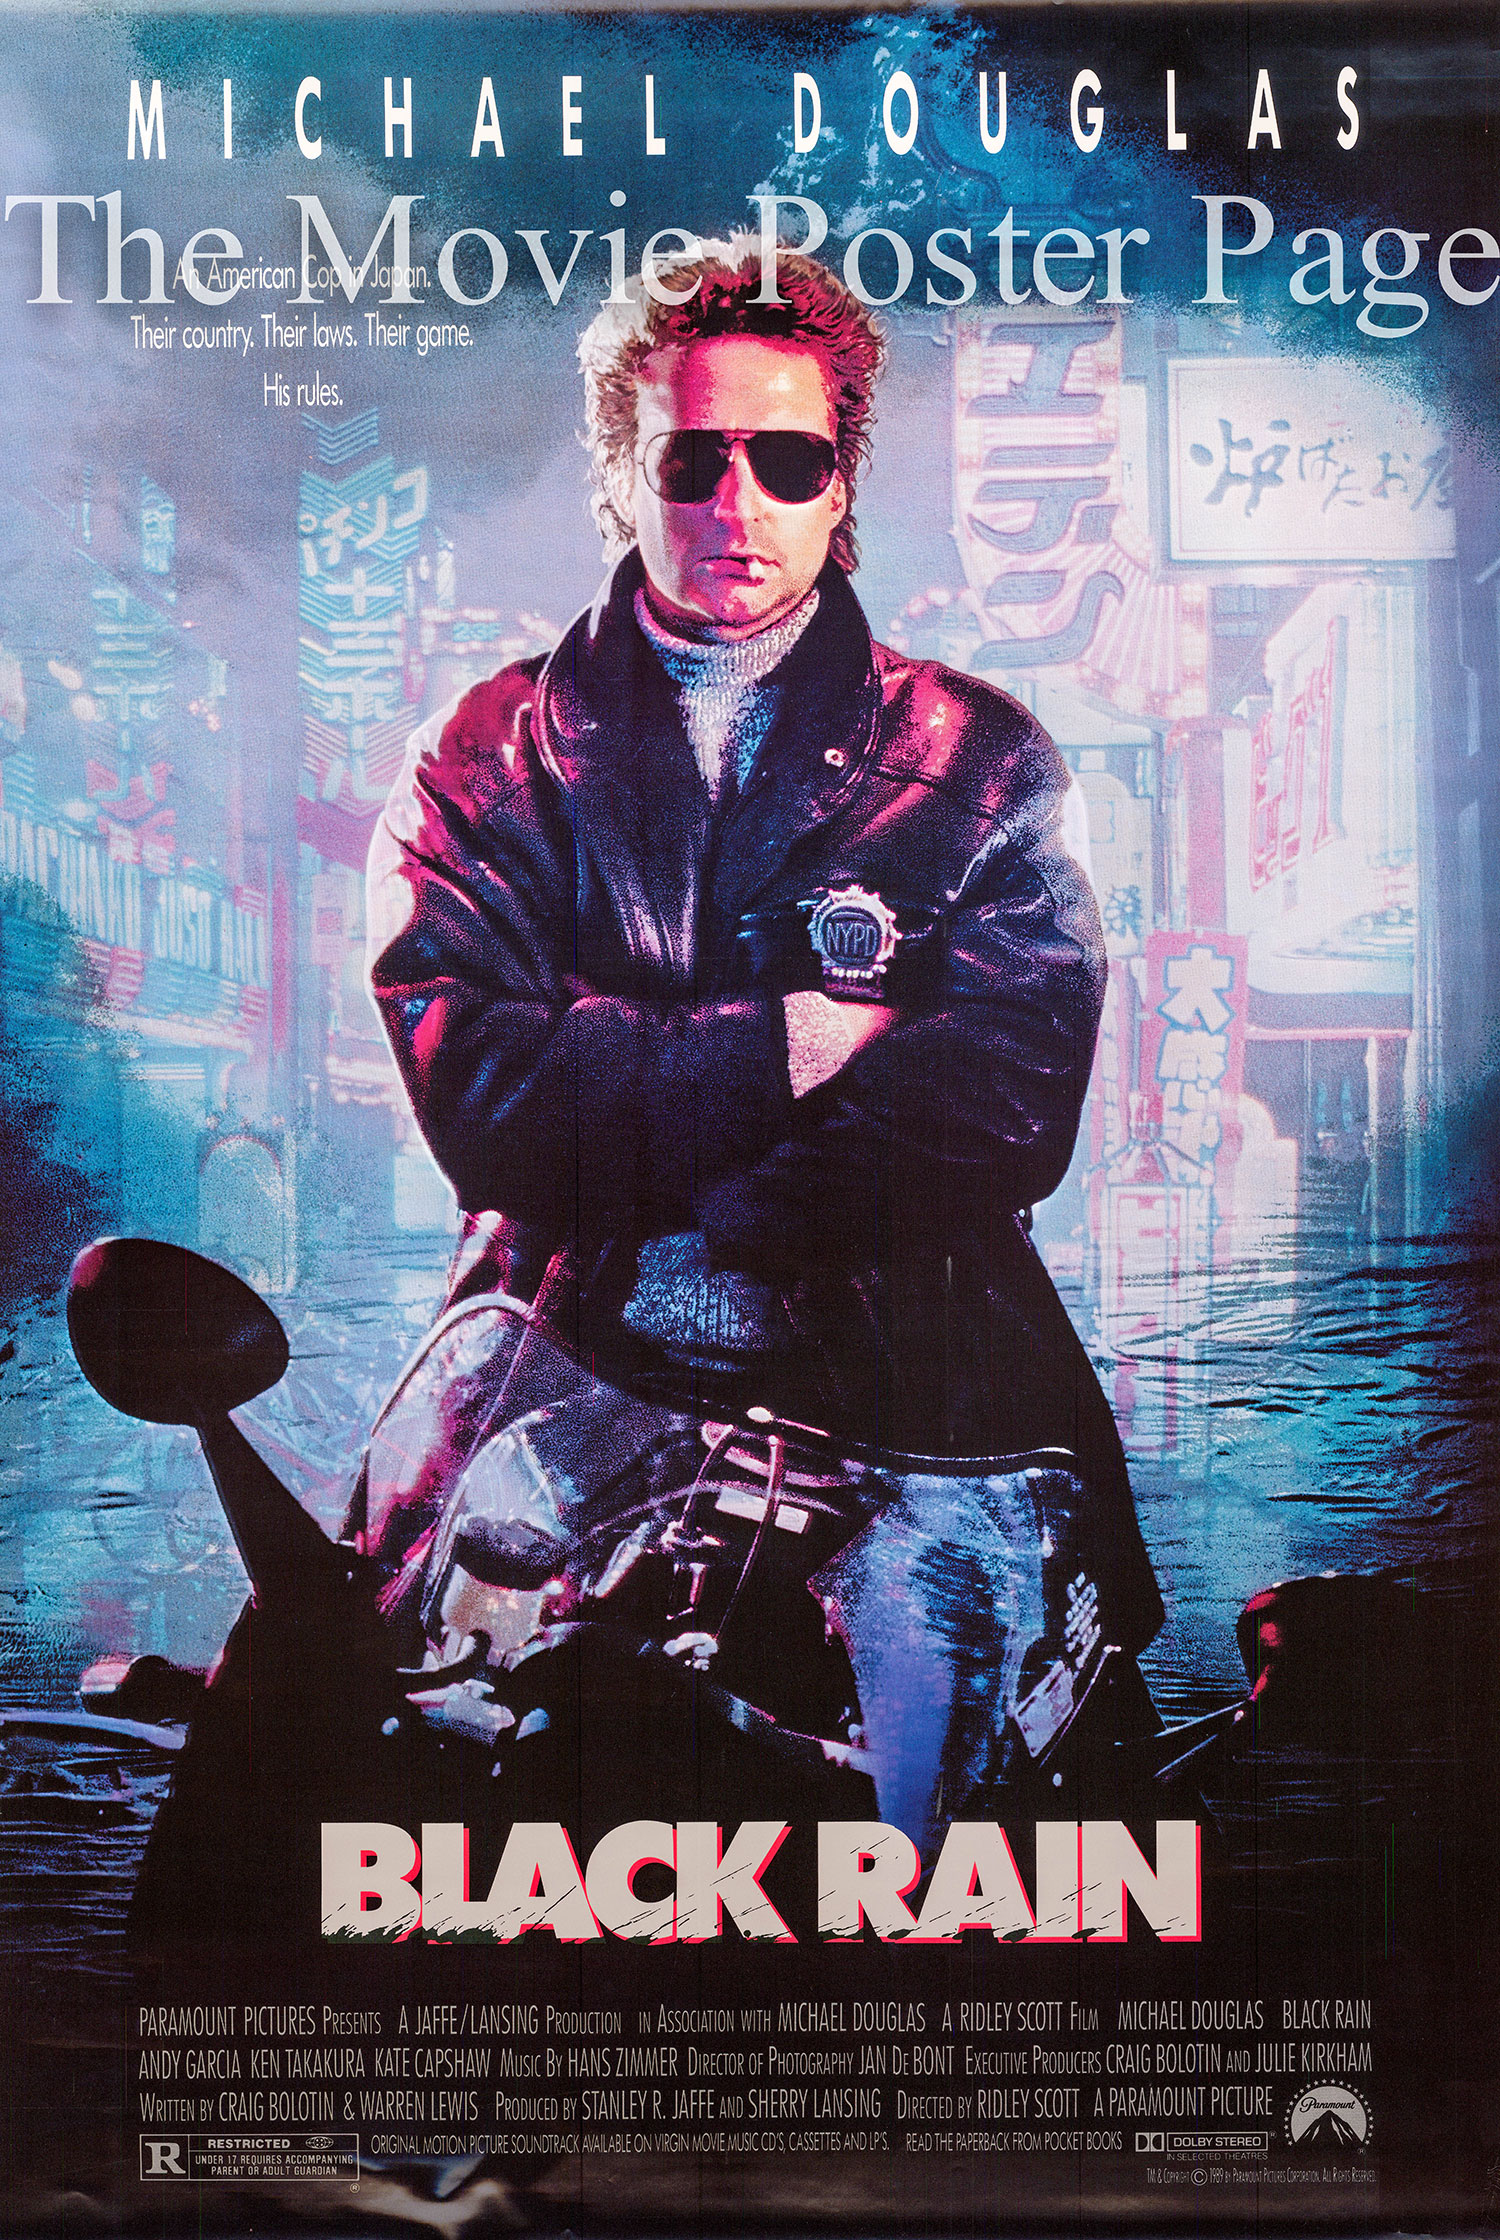 Pictured is a US promotional film poster for the 1989 Ridley Scott film Black Rain starring Michael Douglas.